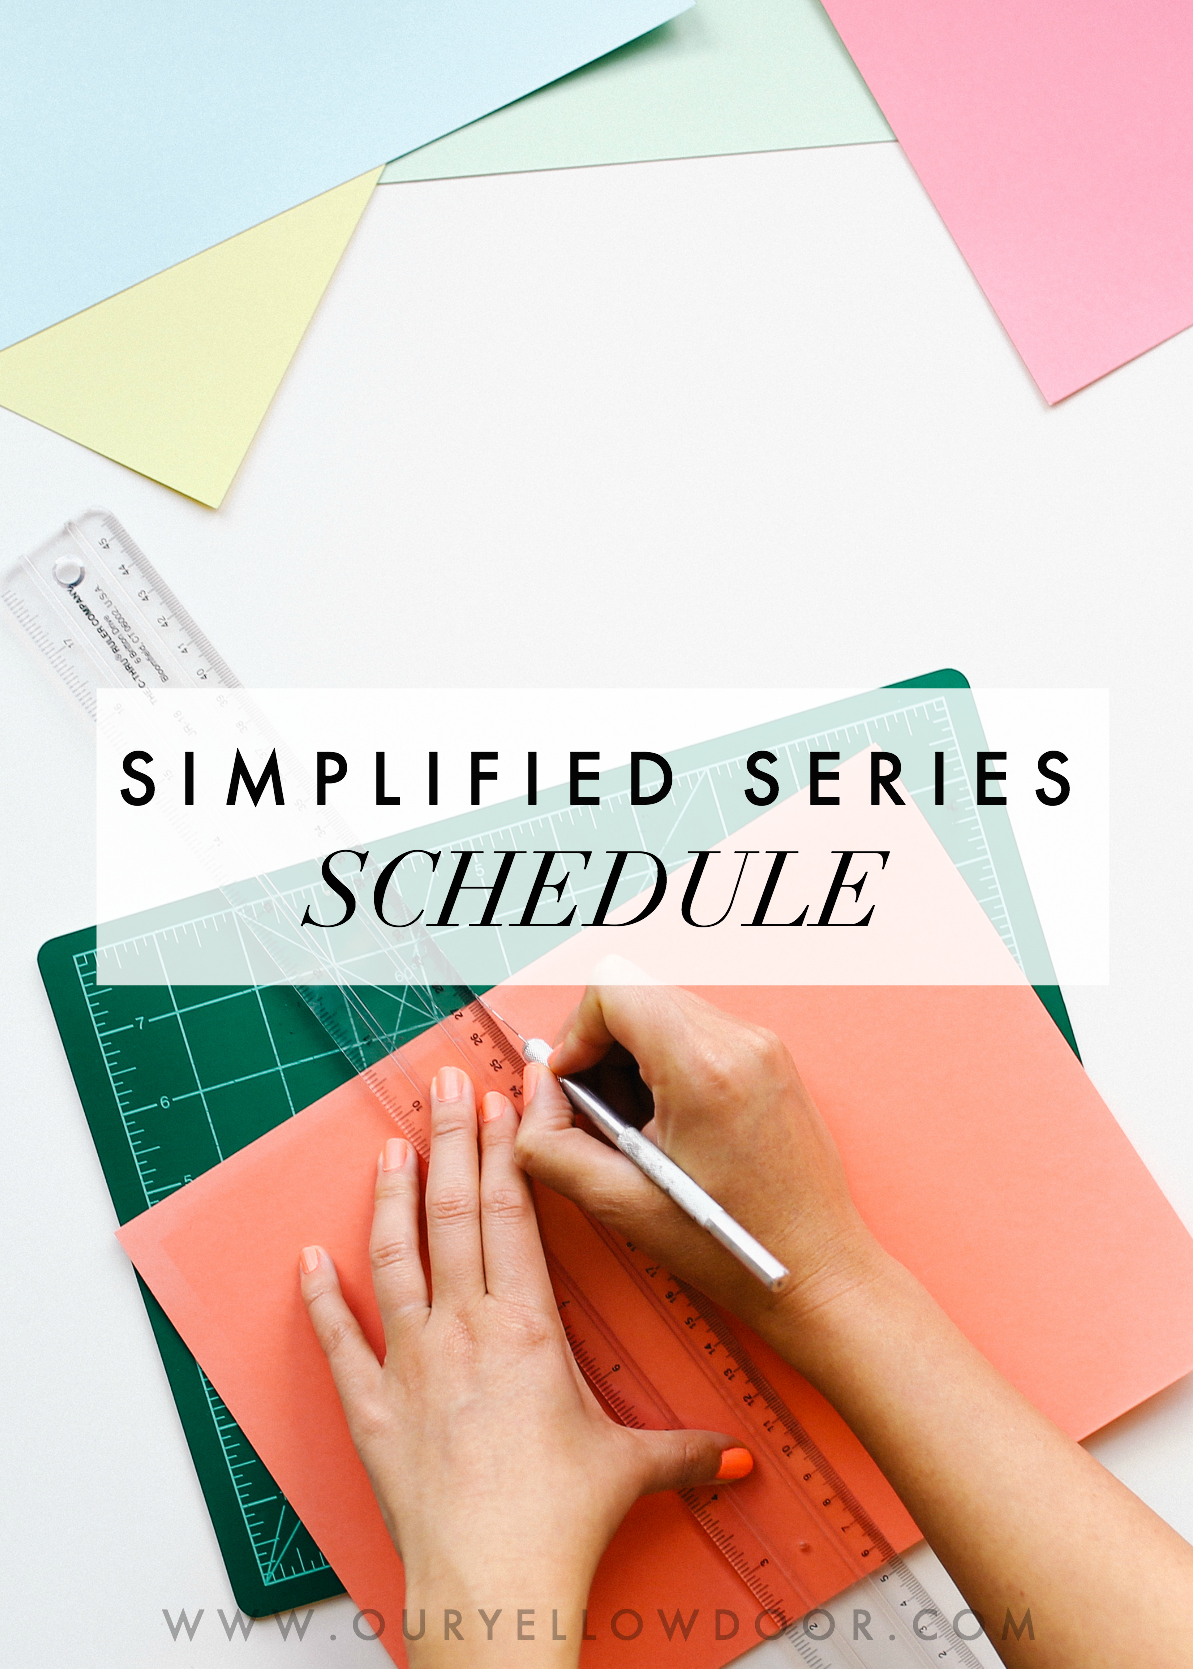 Simplified Series Schedule